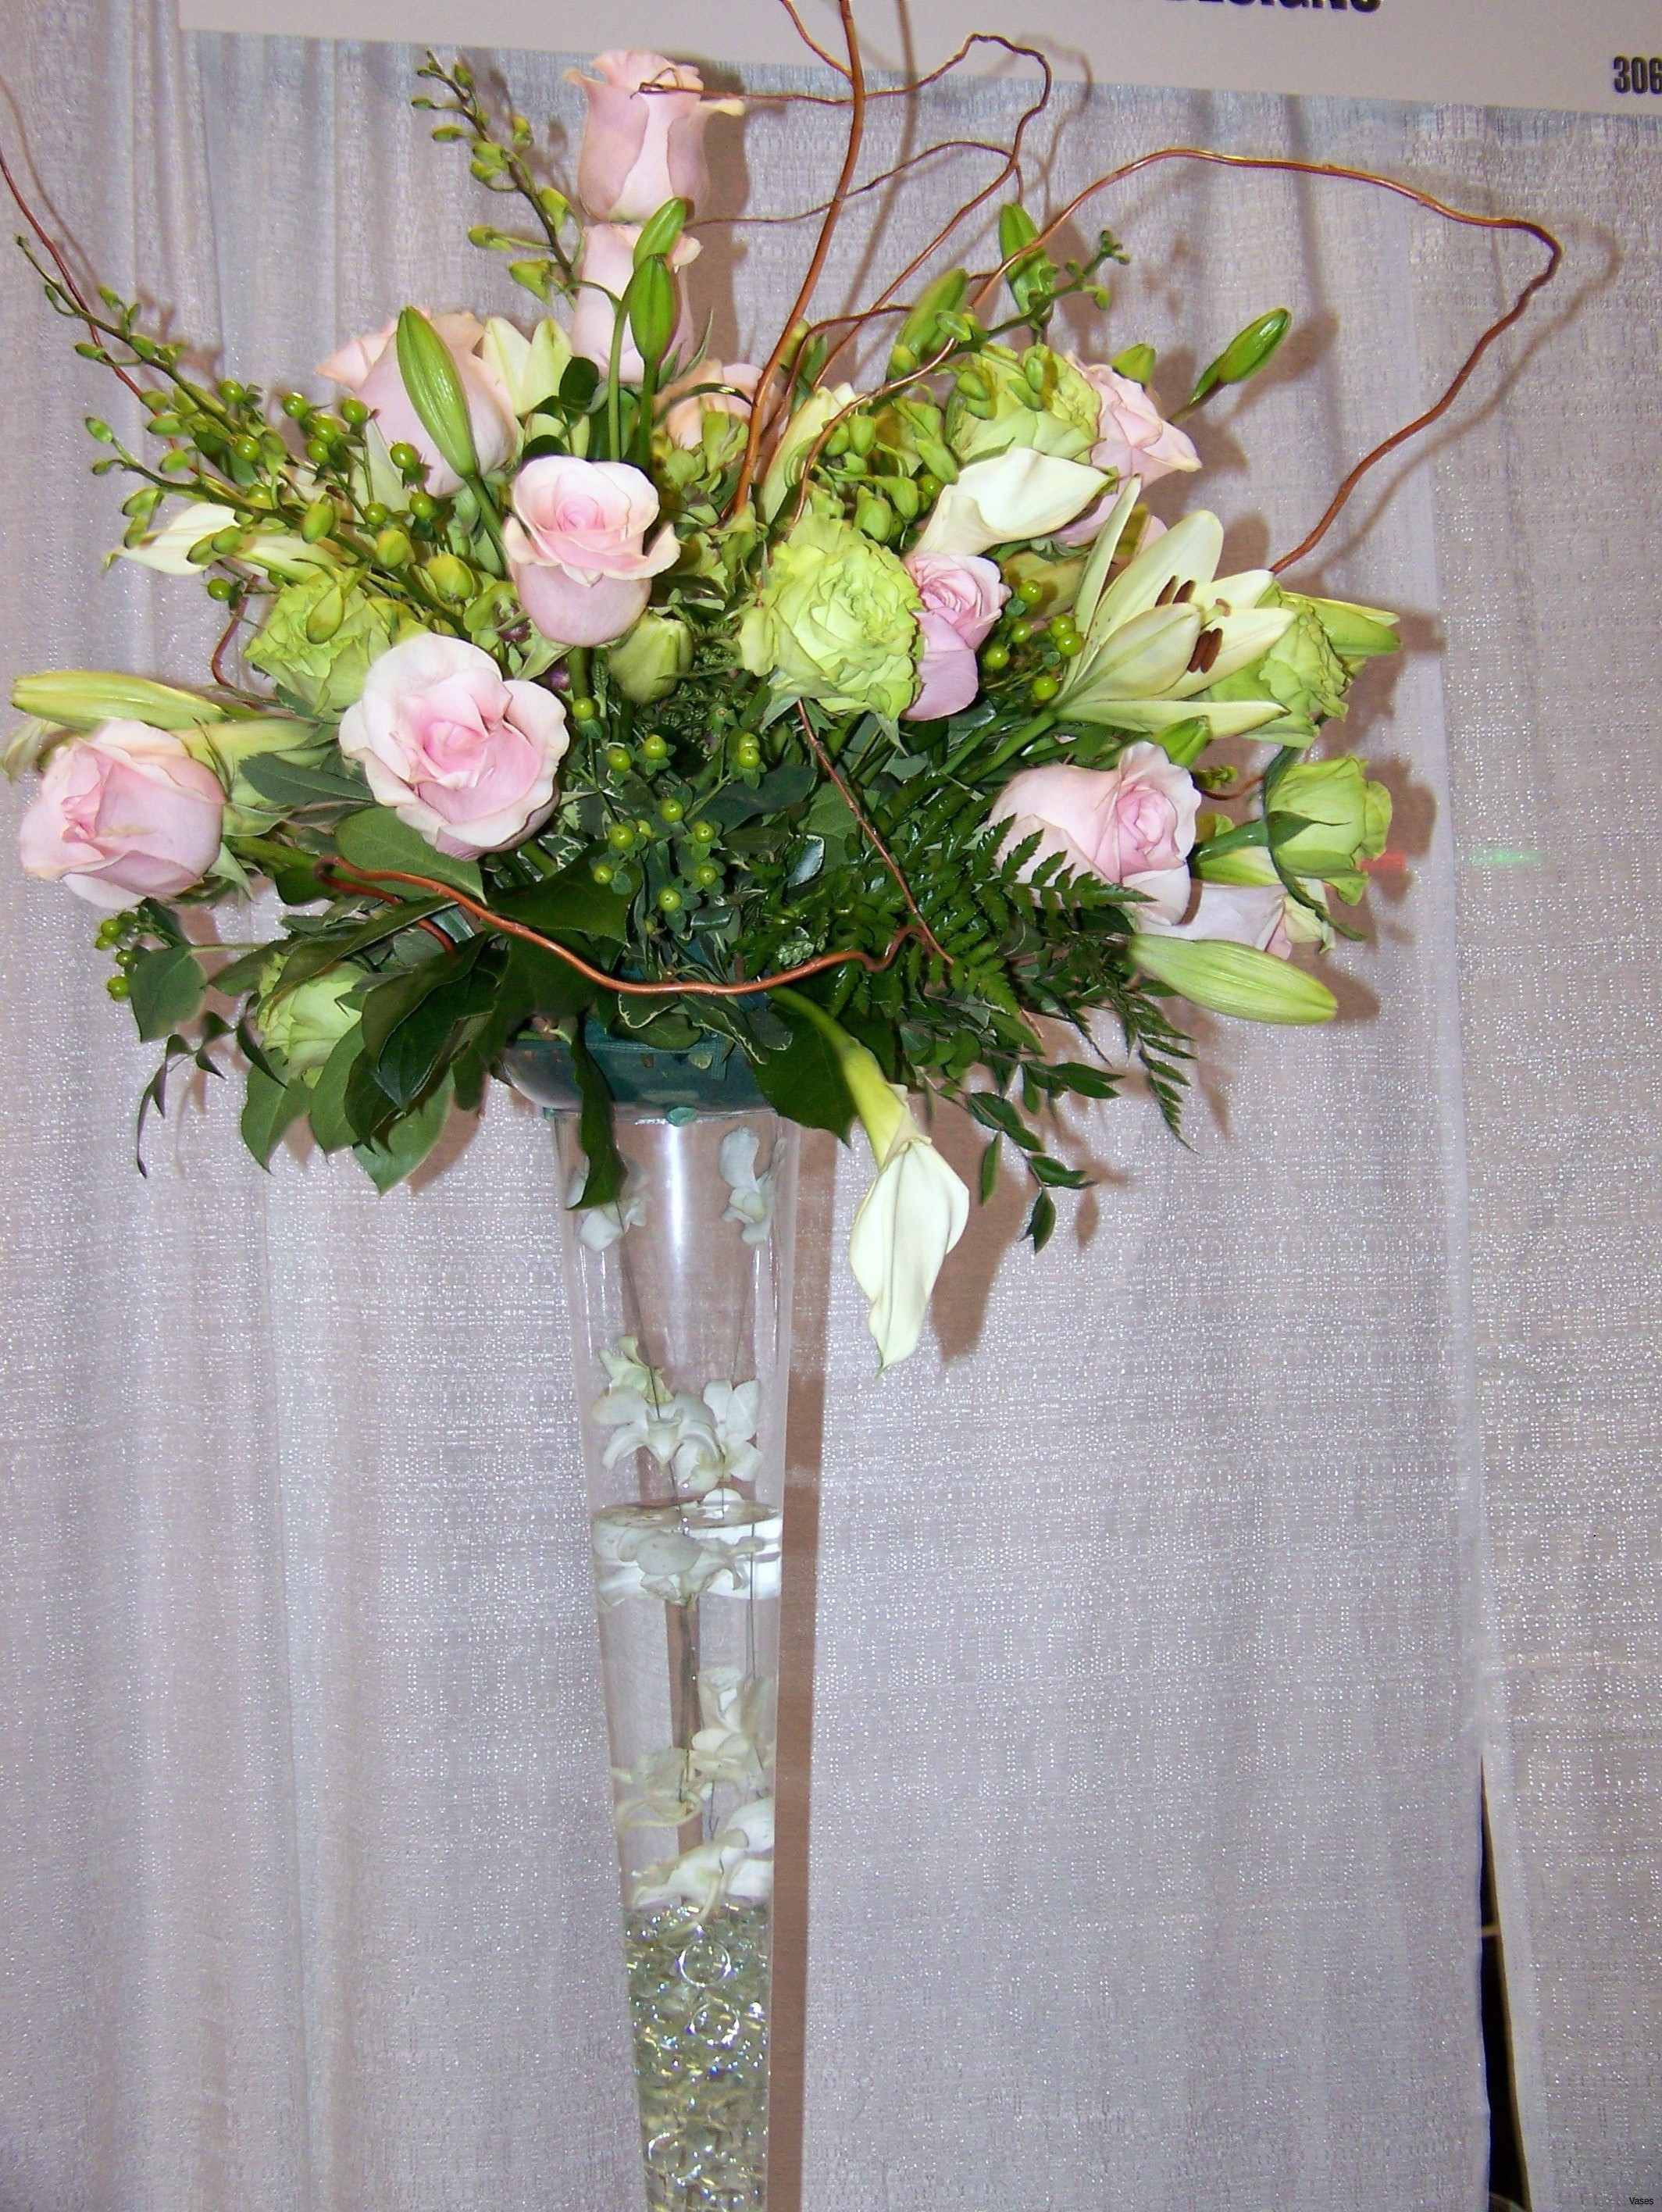 japanese vase shapes of 19 best of flower arrangements on a budget flower decoration ideas with flower arrangements on a budget elegant wedding decoration ideas bud amazing h vases ideas for floral